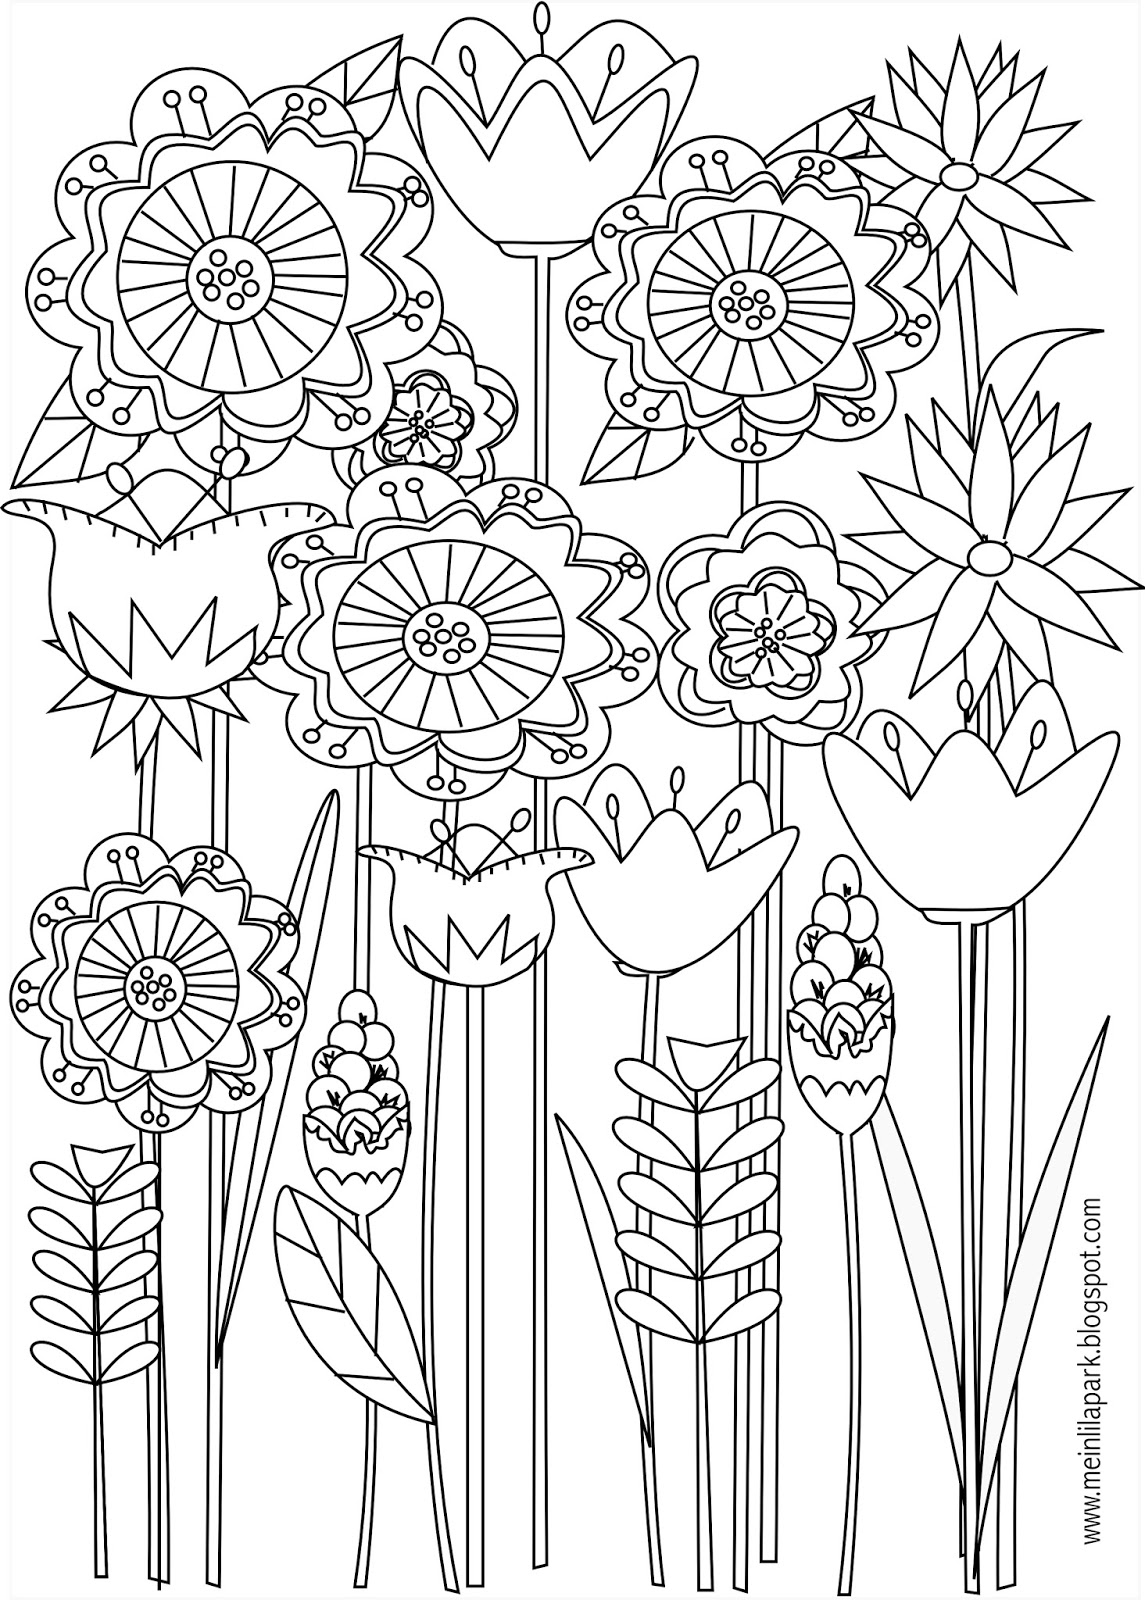 free printable coloring pages of flowers large flowers coloring pages to download and print for free coloring free printable pages flowers of